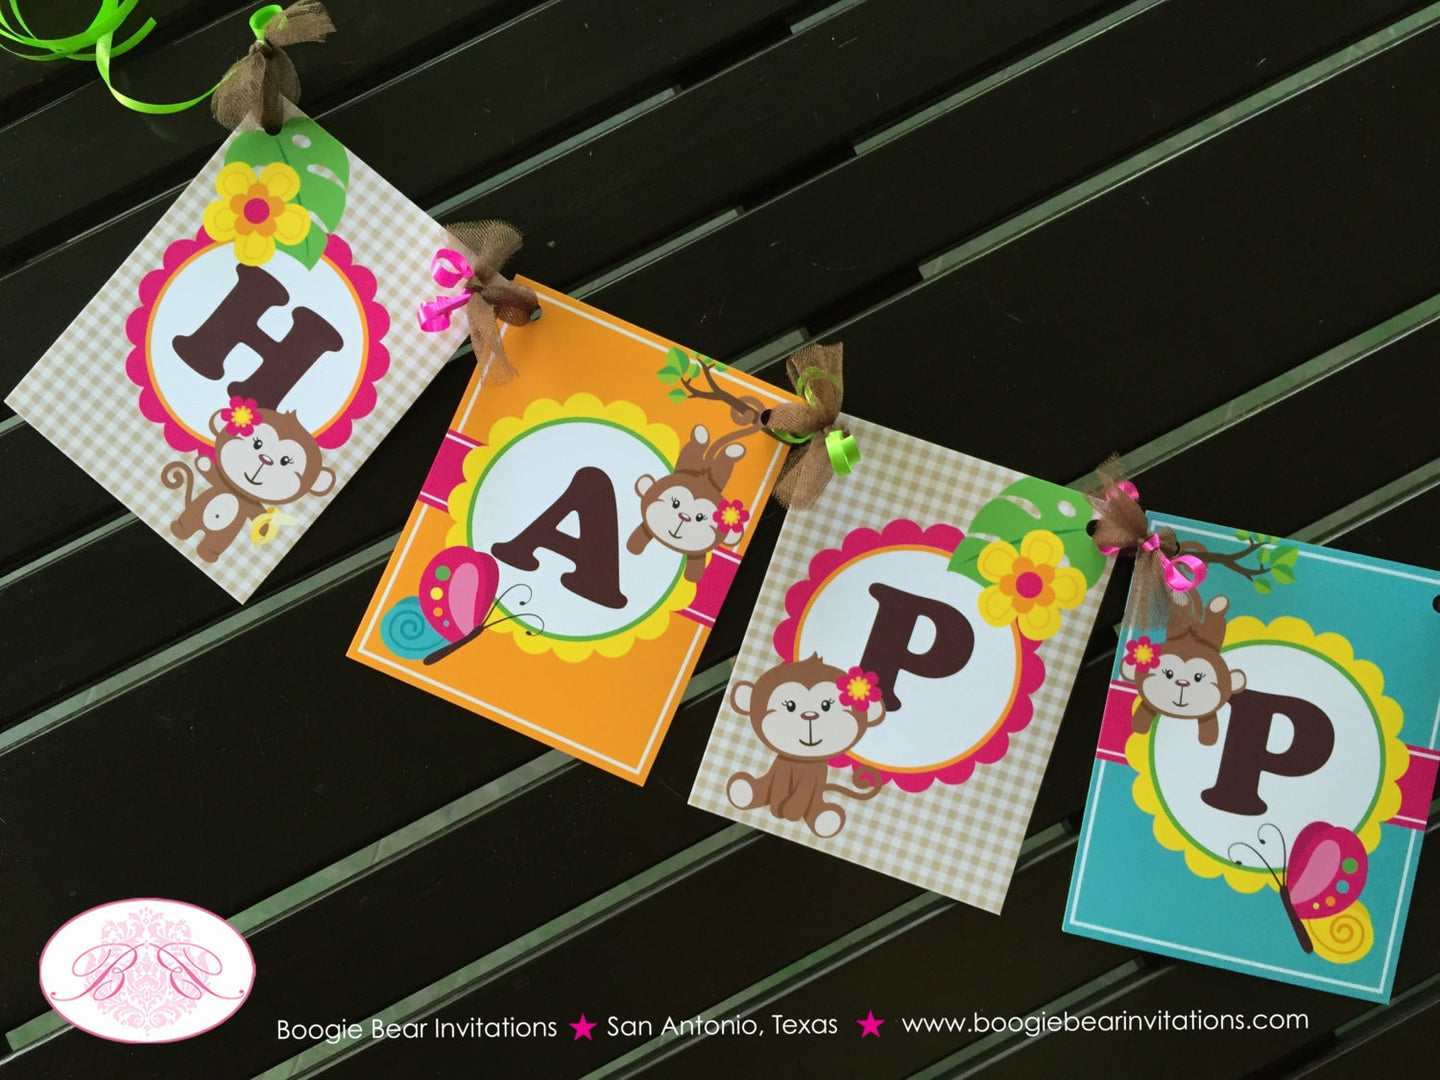 Pink Monkey Happy Birthday Party Banner Amazon Tropical Rainforest Jungle Sun Leaf Girl 1st 2nd 3rd Boogie Bear Invitations Katrina Theme